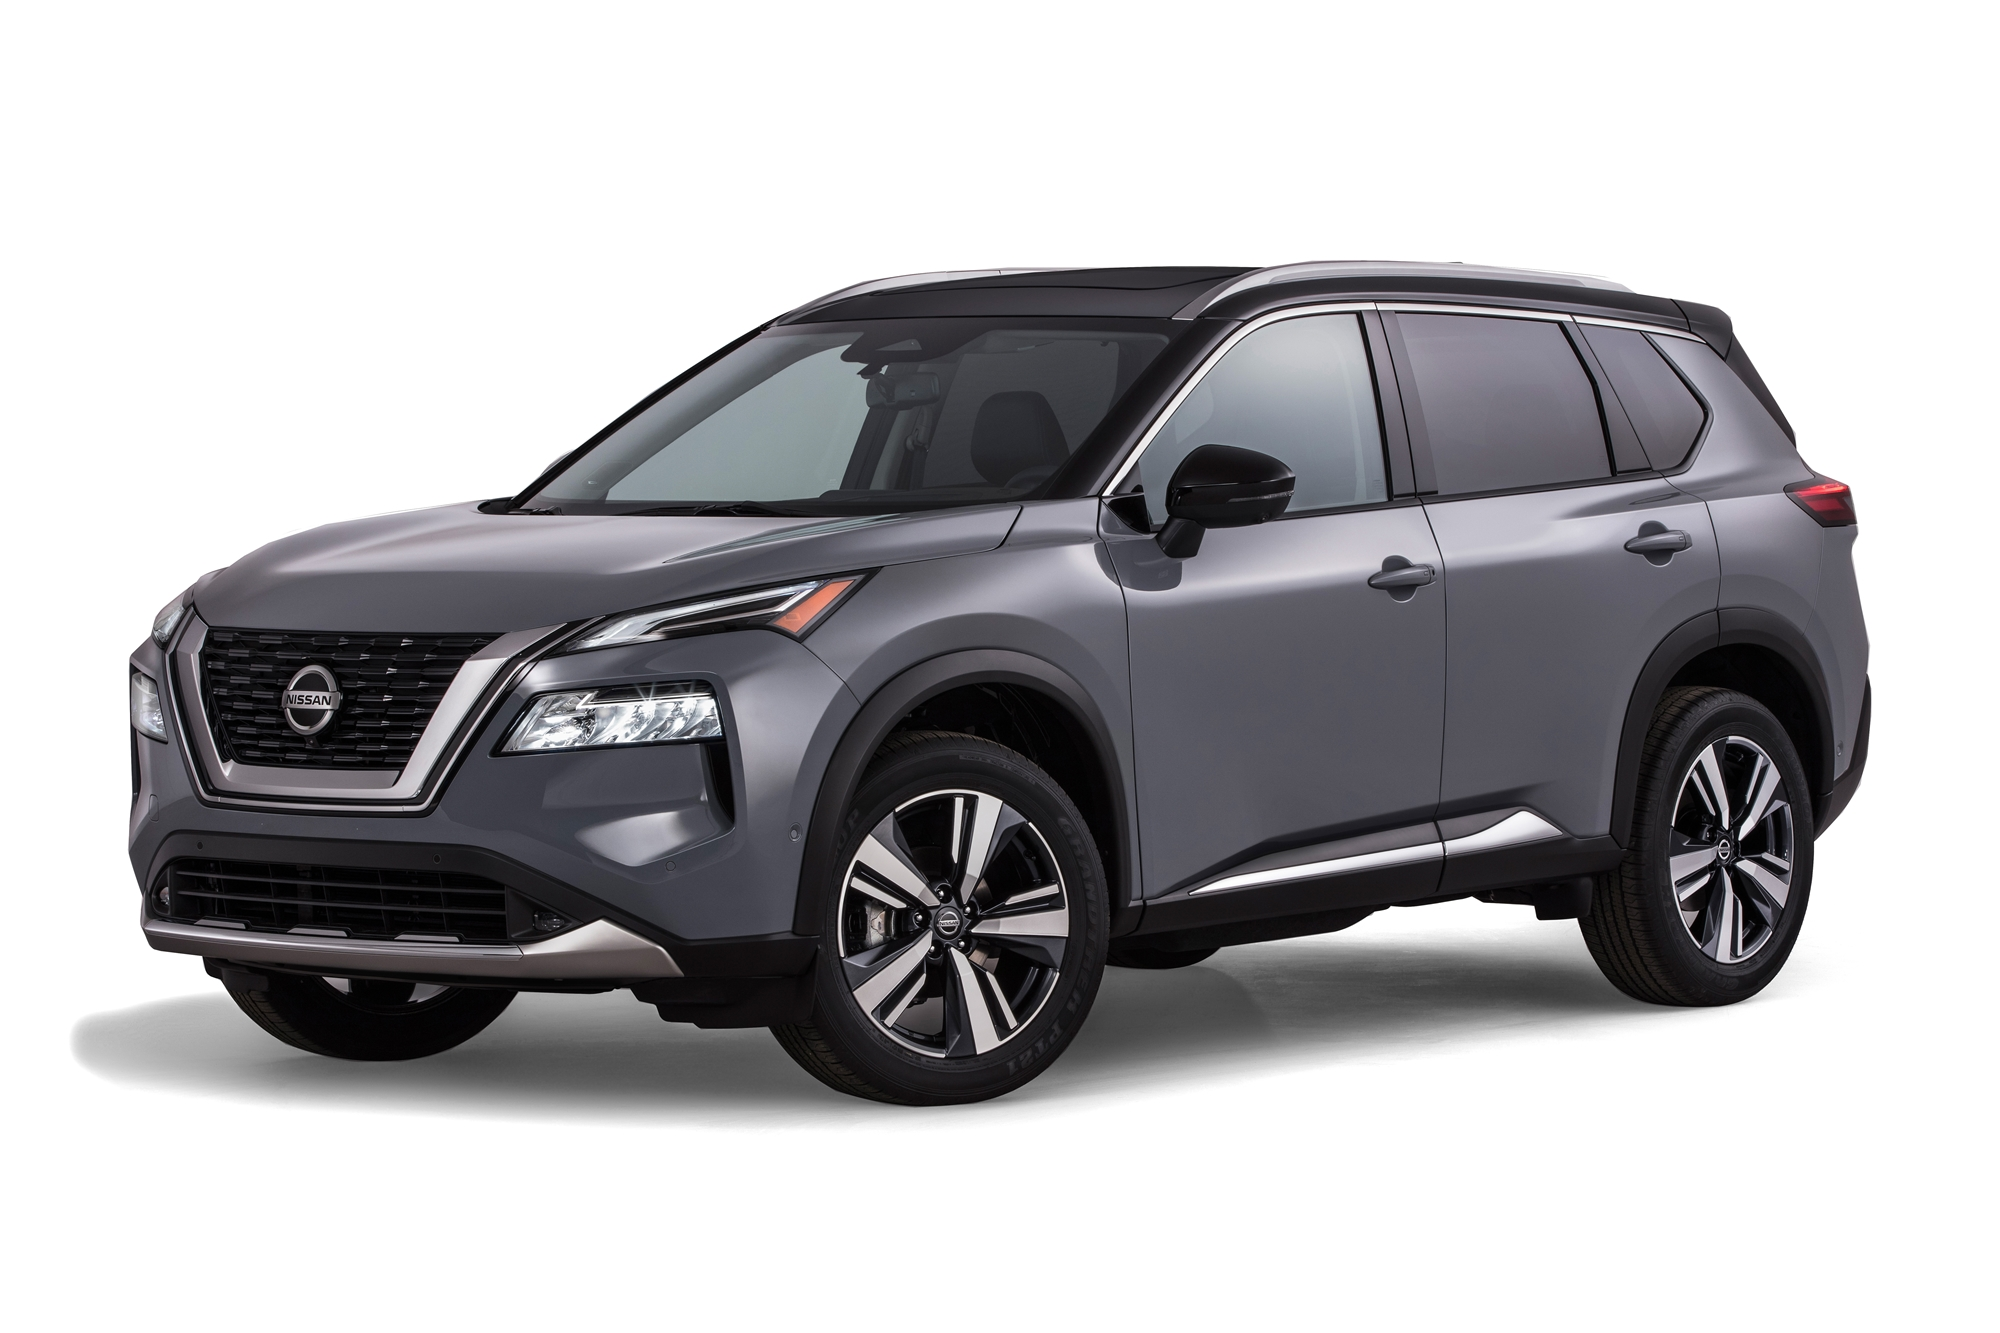 2021 nissan rogue sv full specs, features and price | carbuzz